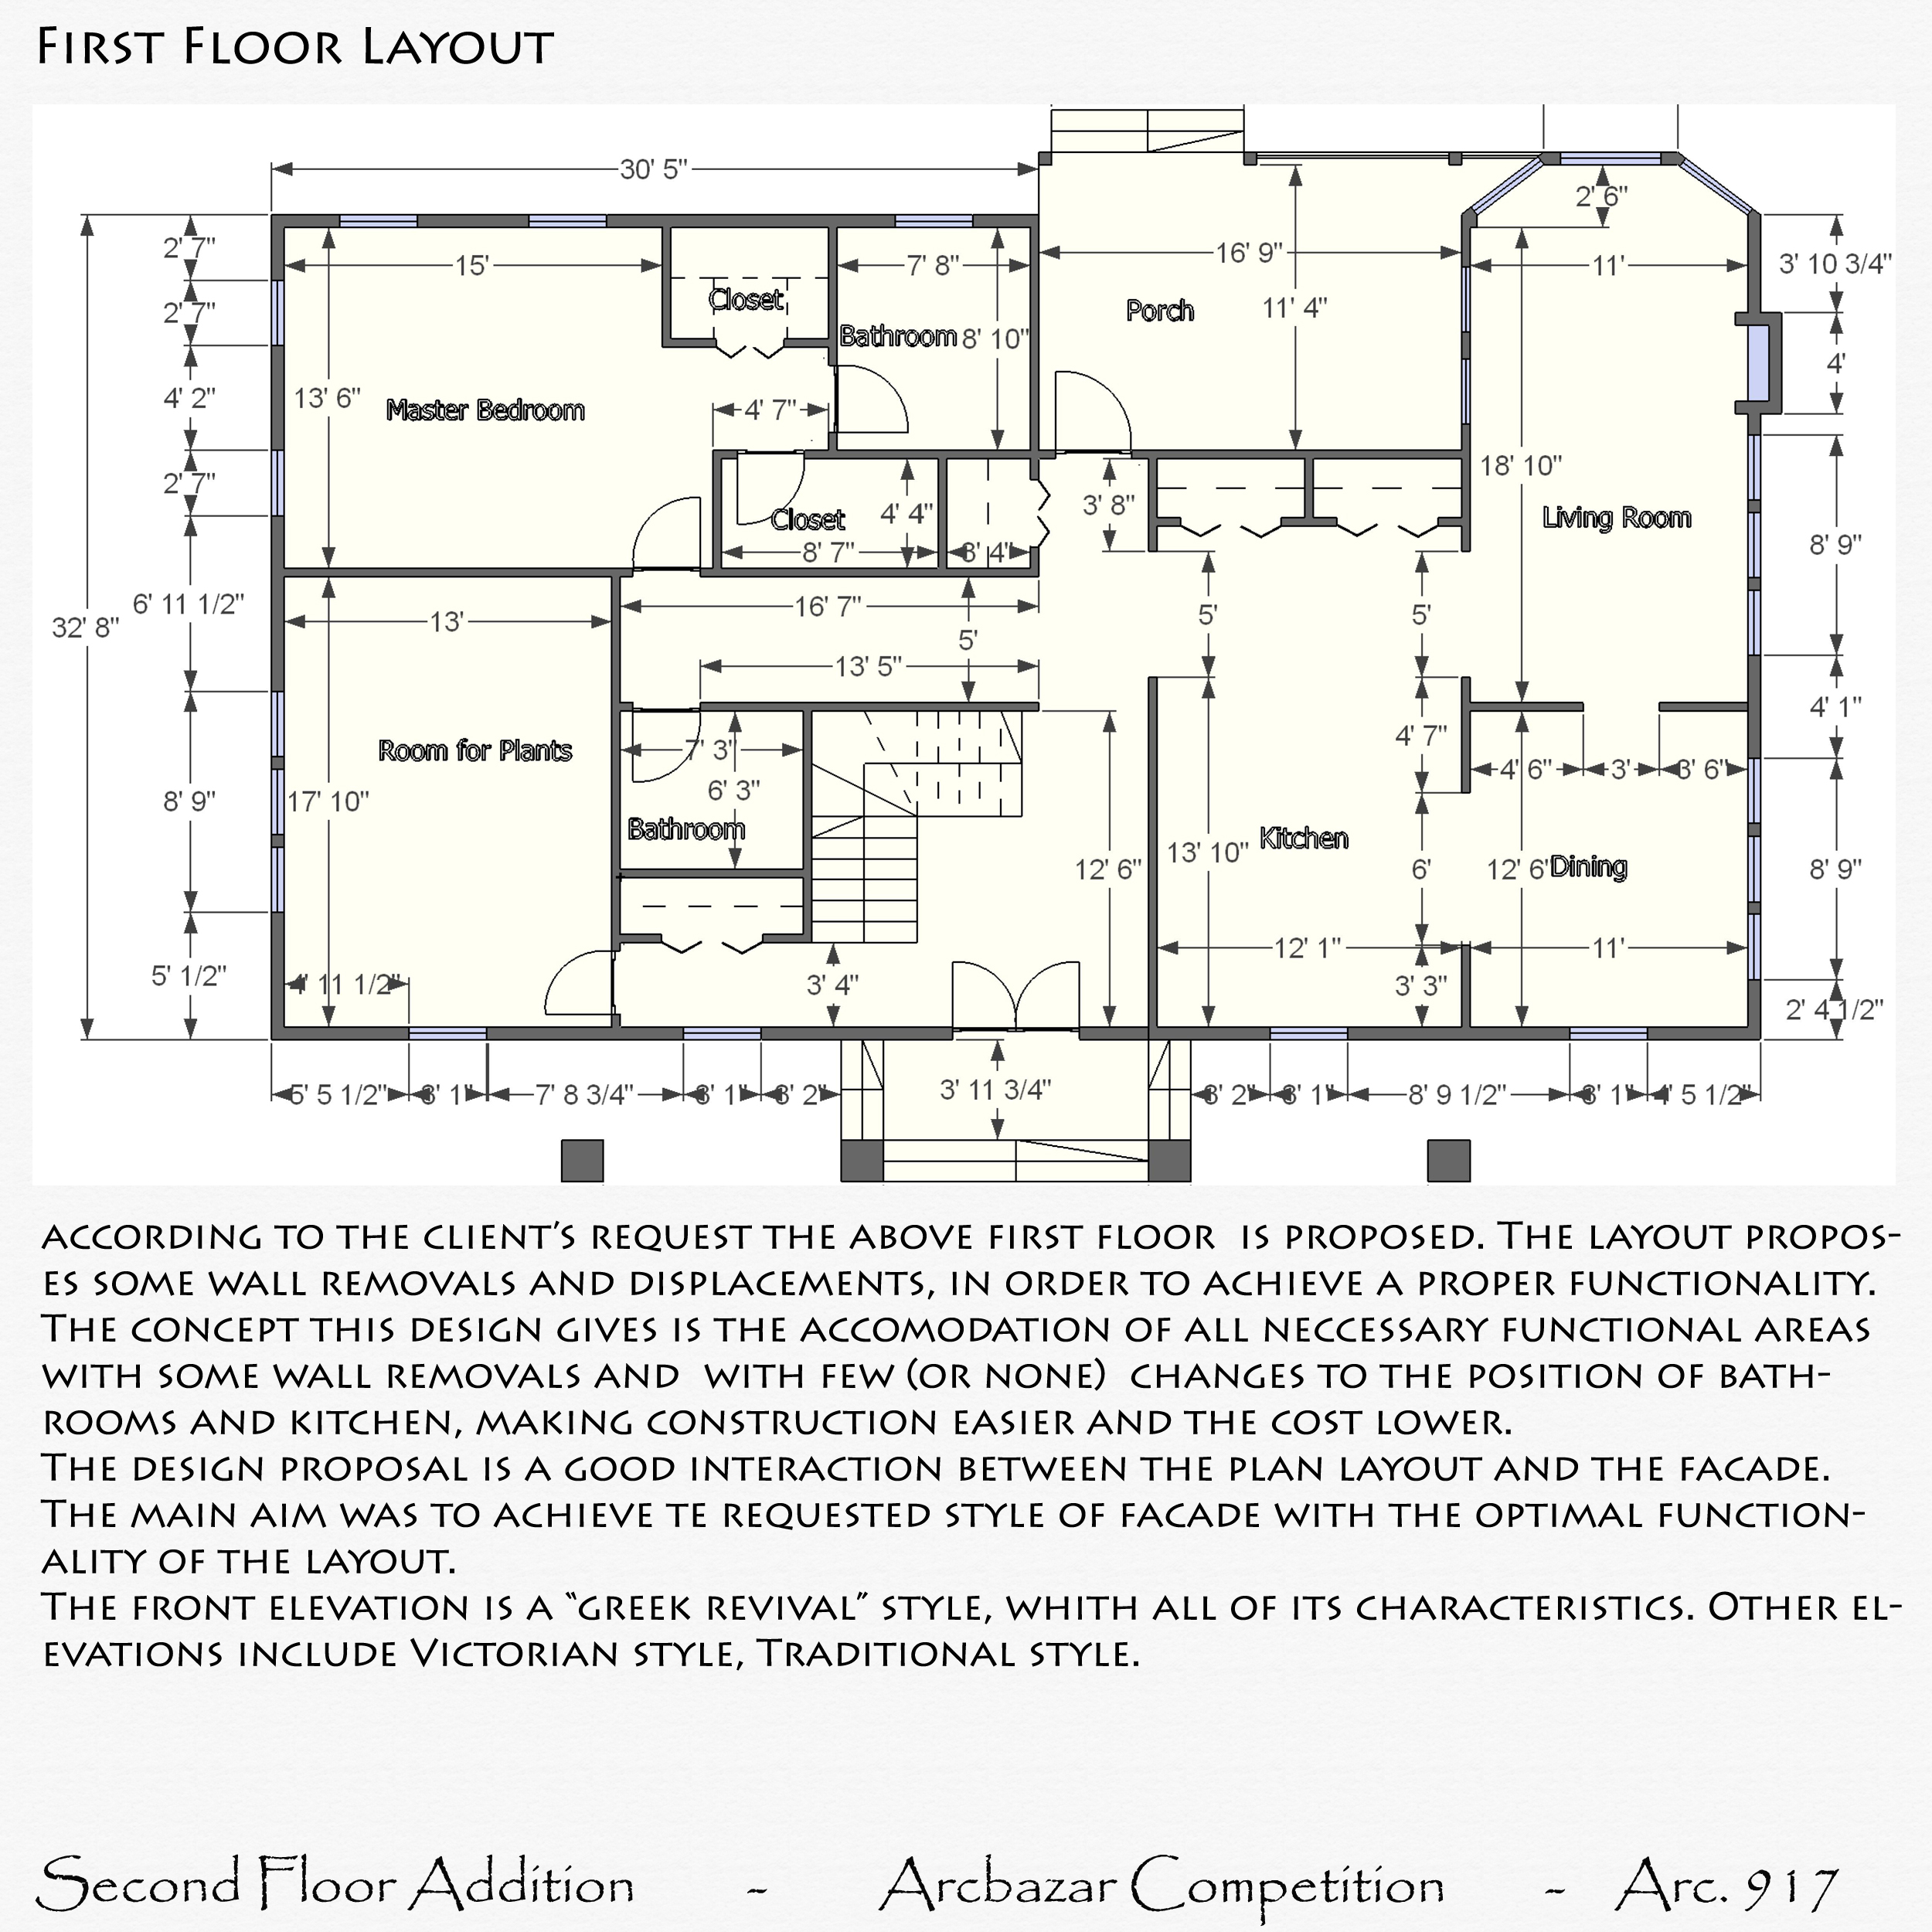 Additions plans designed by edlira koleci oku second for Second floor addition floor plans